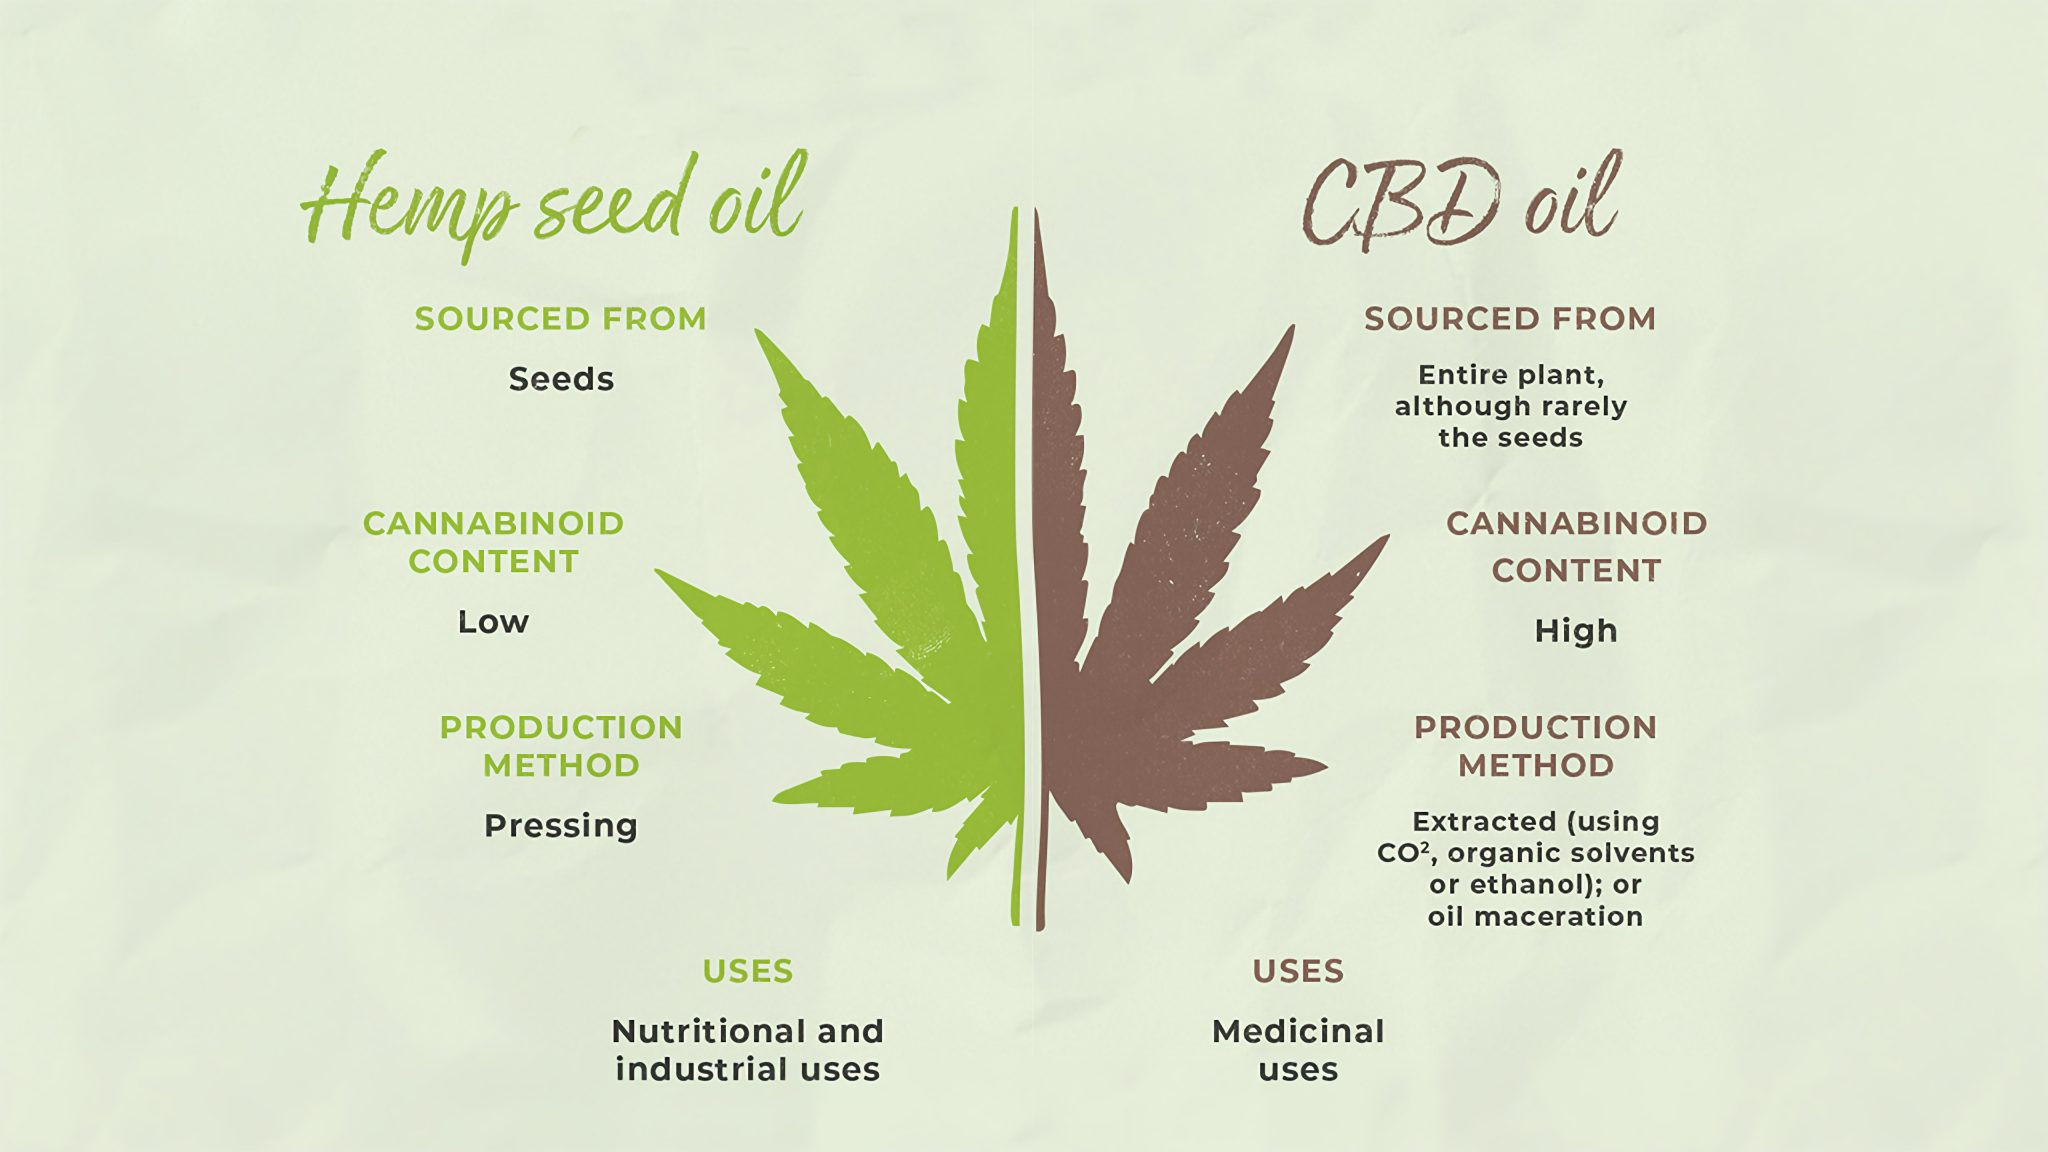 Hempseed oil Vs. CBD oil